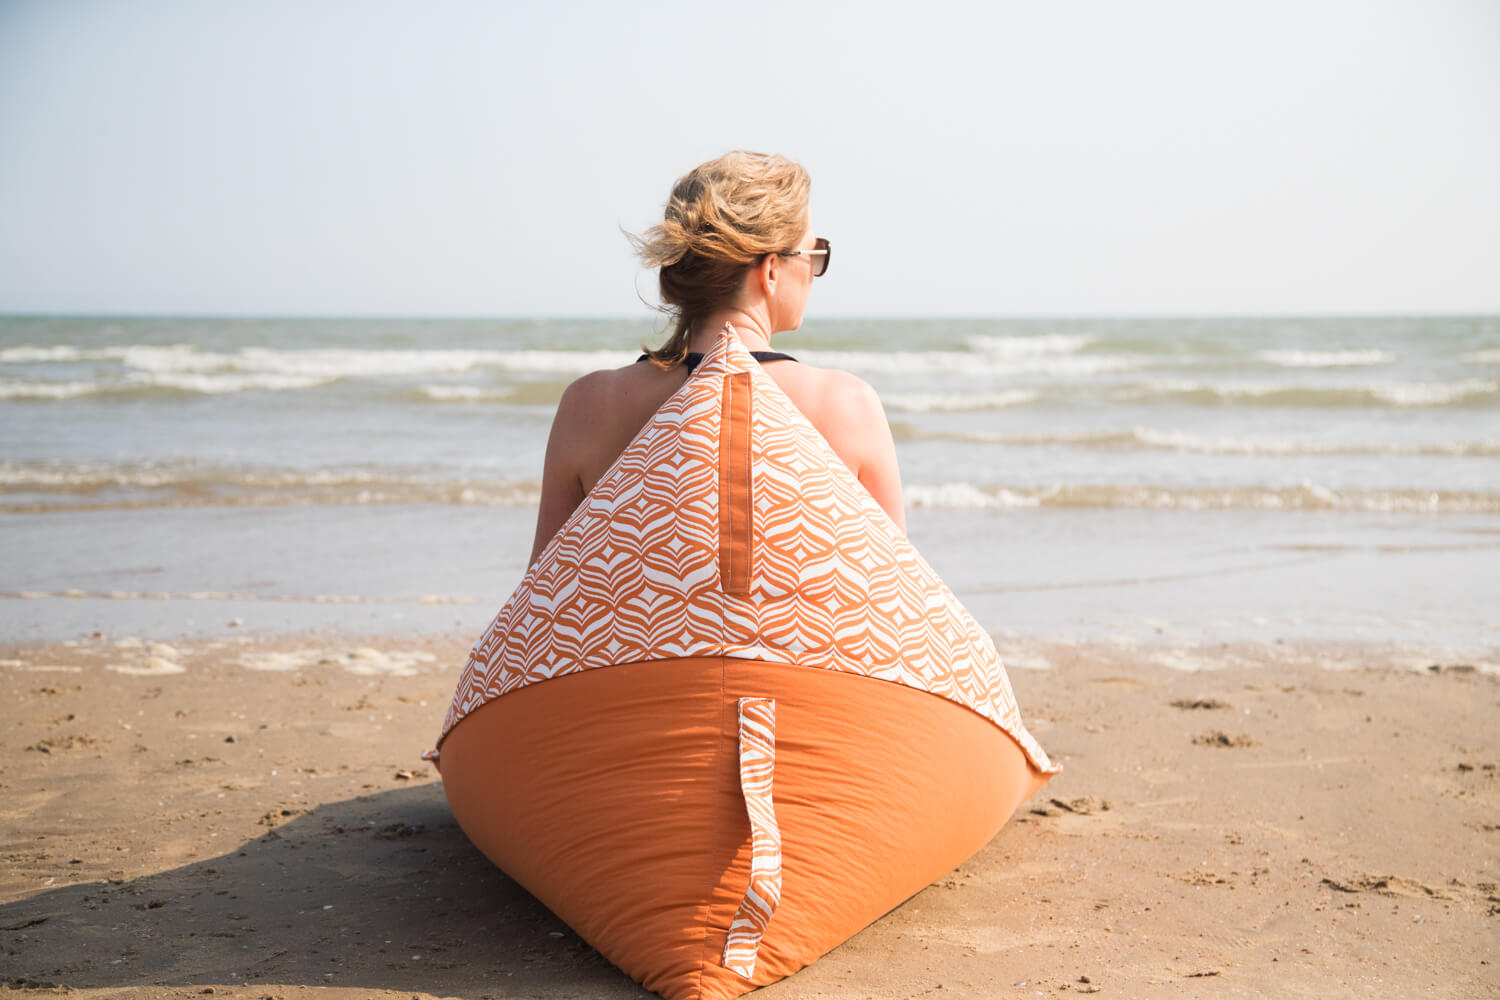 A woman sits on an orange beach lounger beanbag looking out at the waves